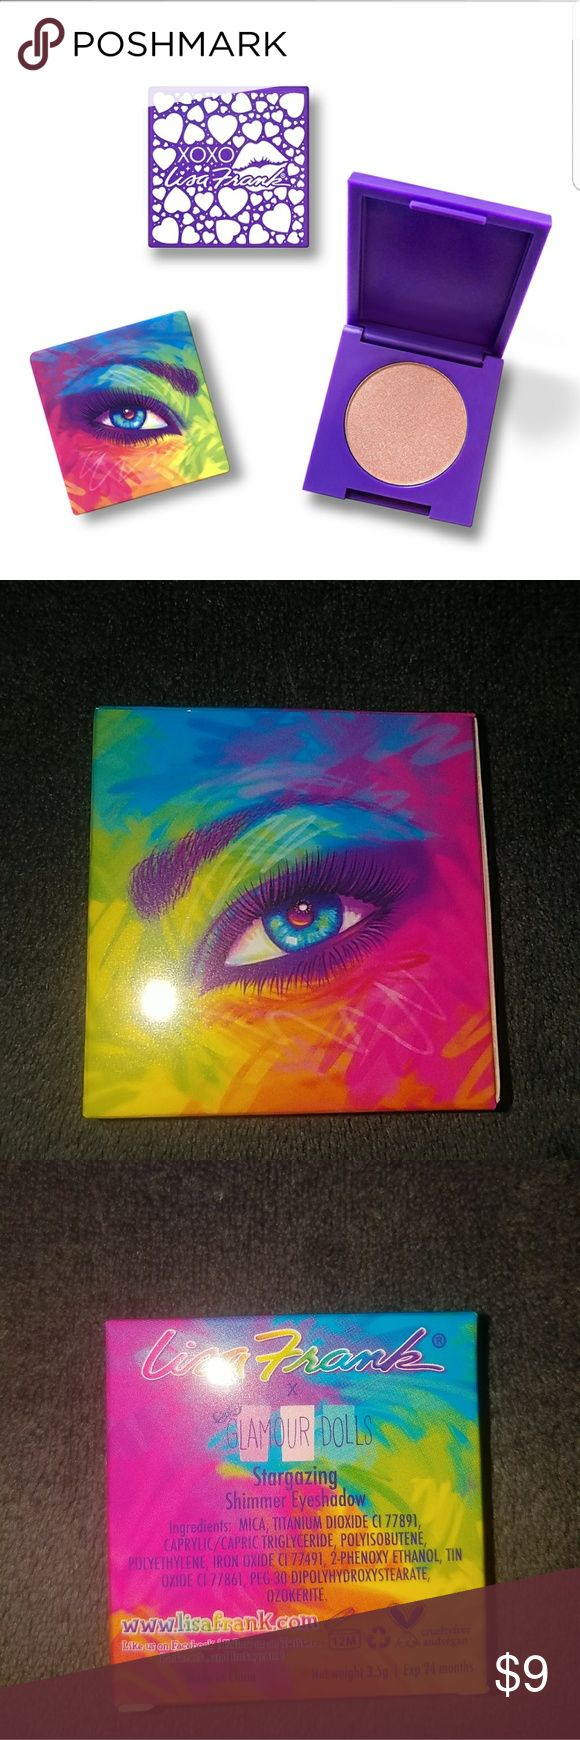 NIB Lisa Frank Eyeshadow Your childhood makeup dreams have come true with this collab between Lisa Frank and Glamour Dolls. This single eyeshadow in Stargazing is a shimmery copper color housed in purple plastic packaging covered in a Lisa Frank design. Little kid dreams turned into adult realities! It doesn't get much better than that!  *3.5 grams *Cruelty free *Vegan Lisa Frank Makeup Eyeshadow